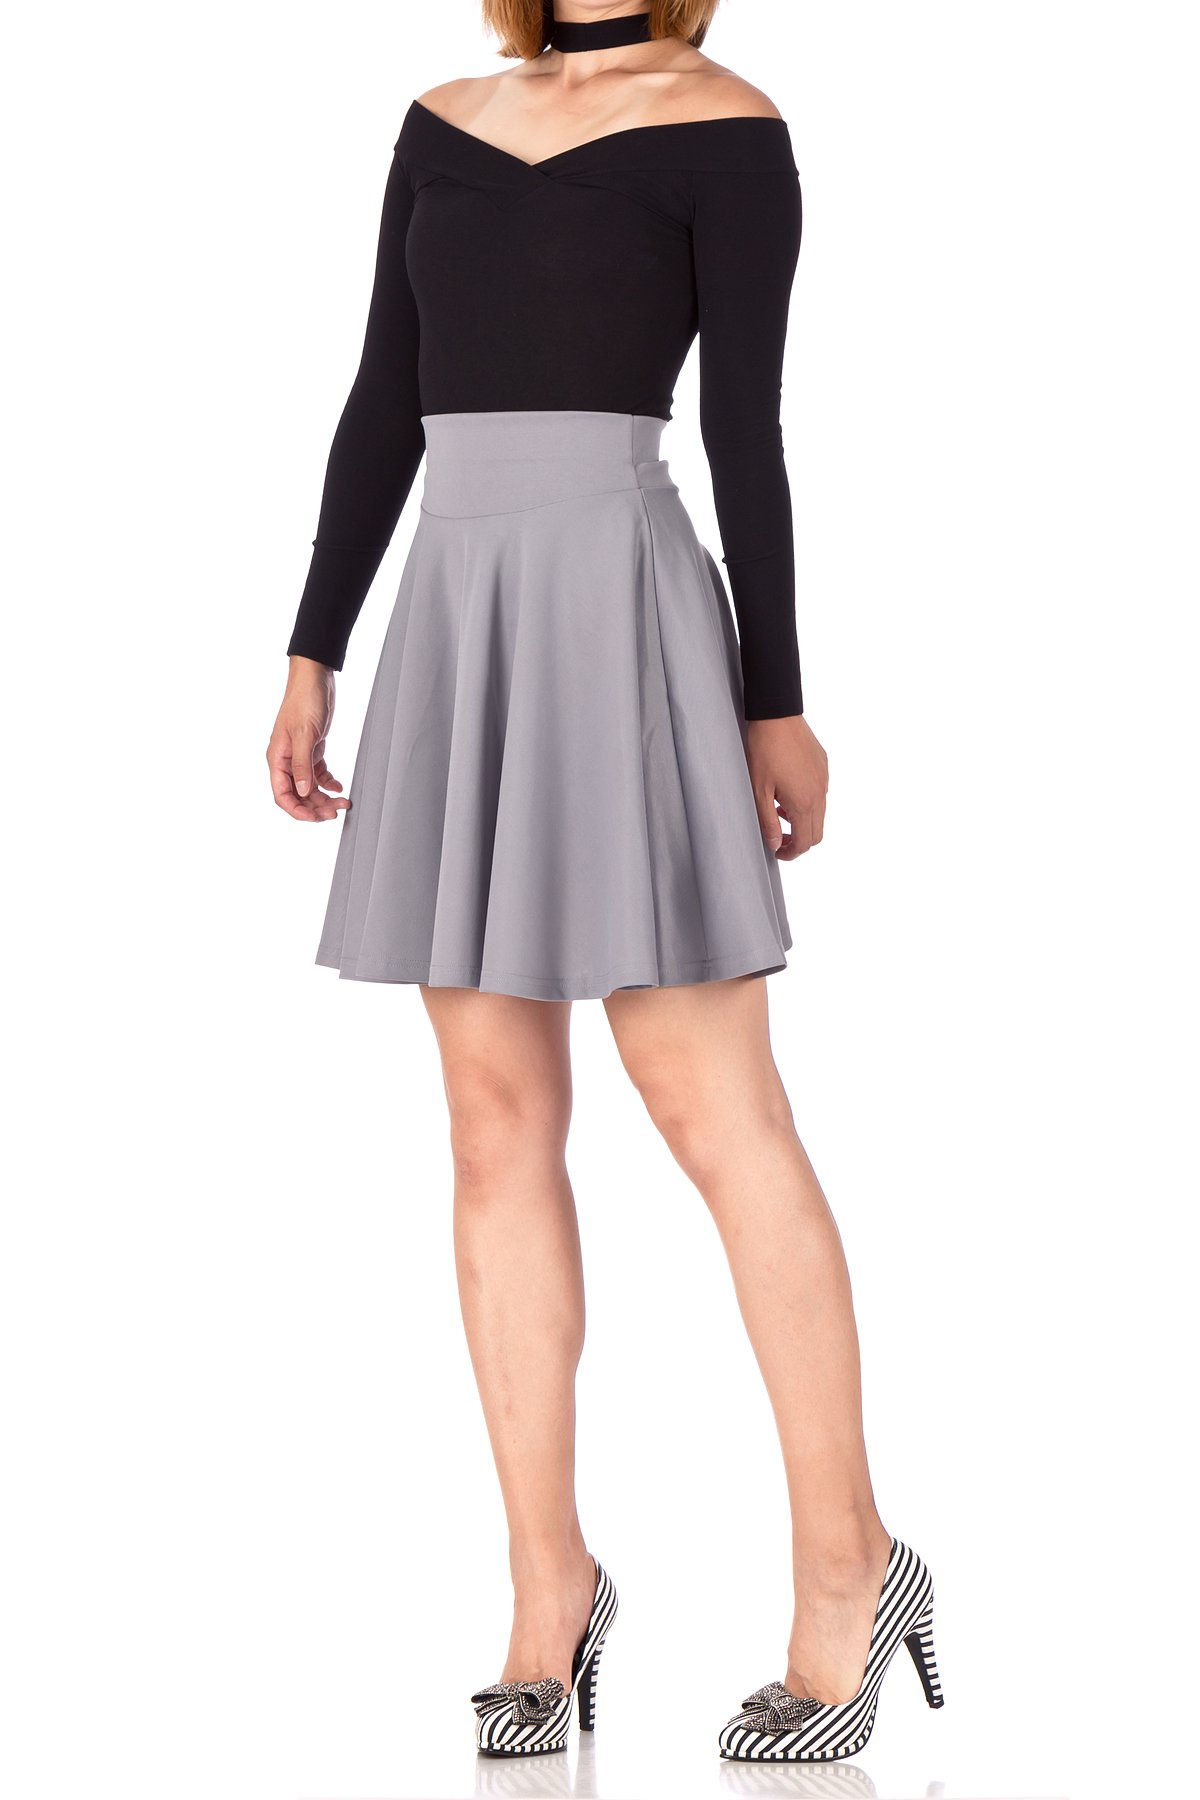 Breathtaking High Waist A line Circle Full Flared Skater Mini Skirt Light Gray 05